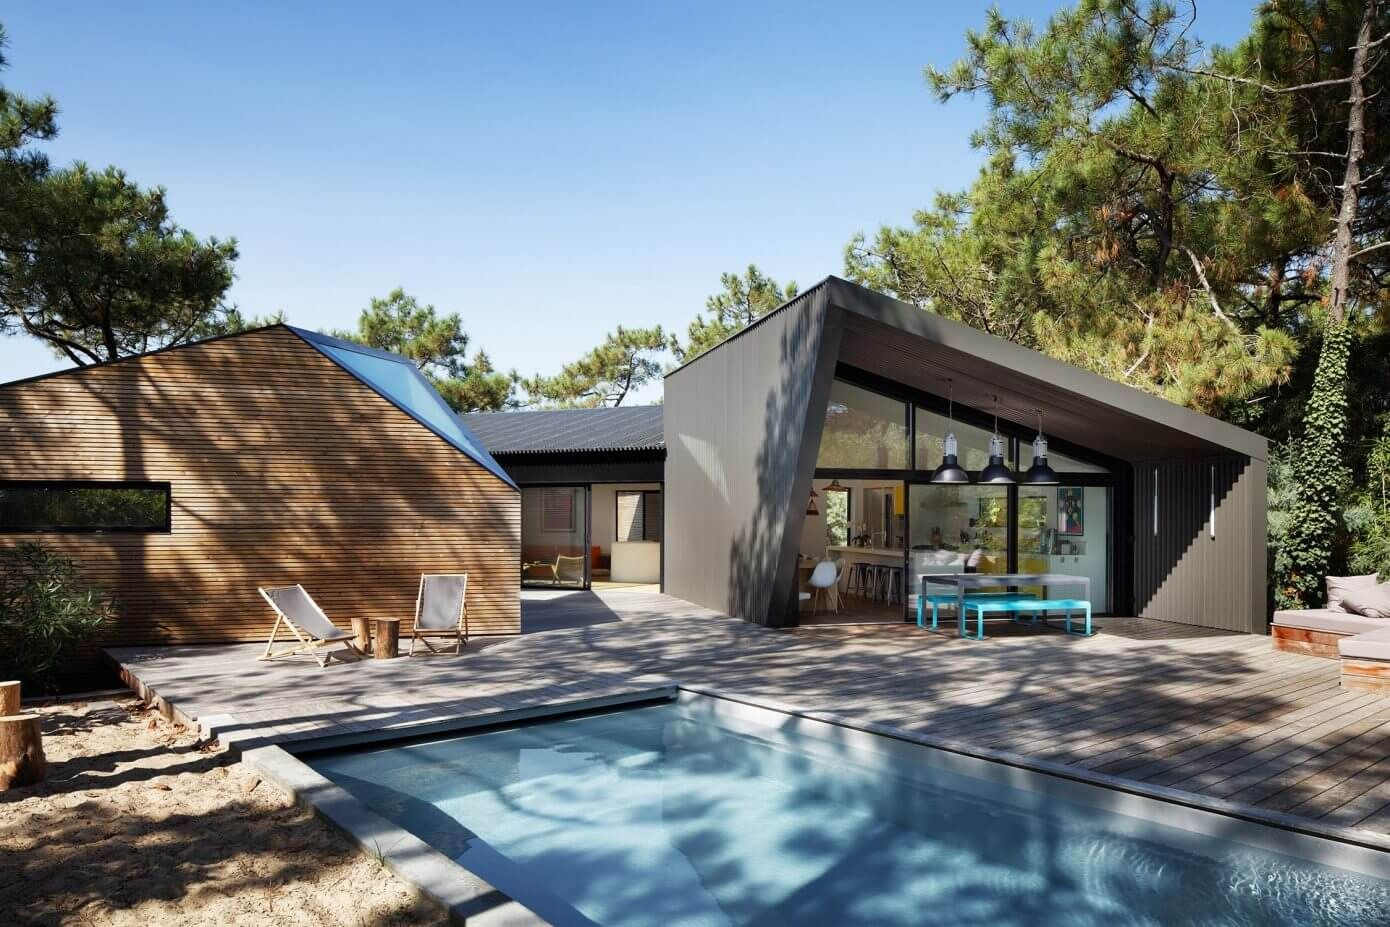 Holiday House in Cap Ferret by Atelier Du Pont | HomeAdore | BEACH ...